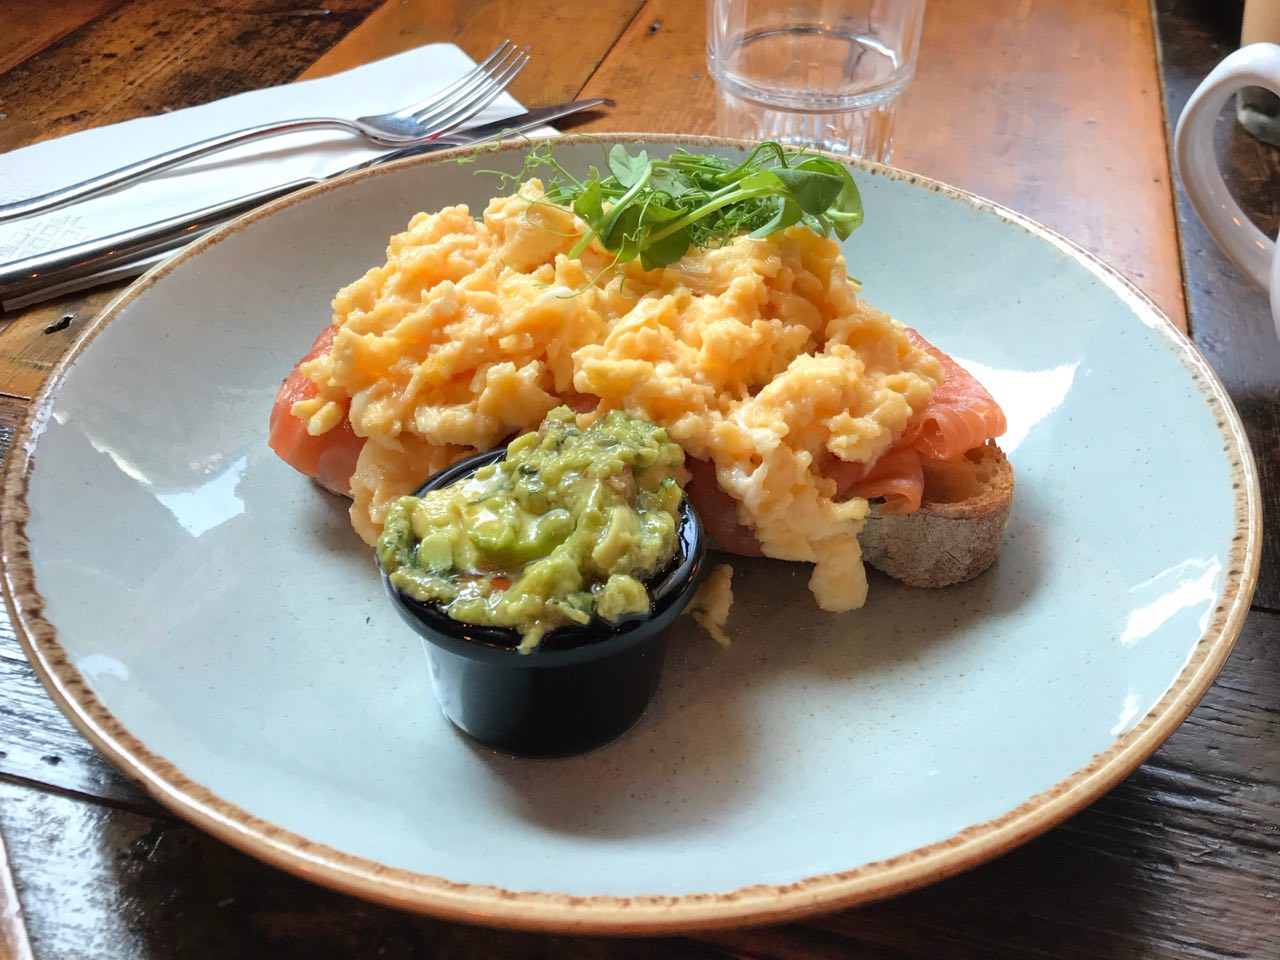 Lou's salmon and scrambled eggs, with smashed avocado on the side, at Leadbelly's